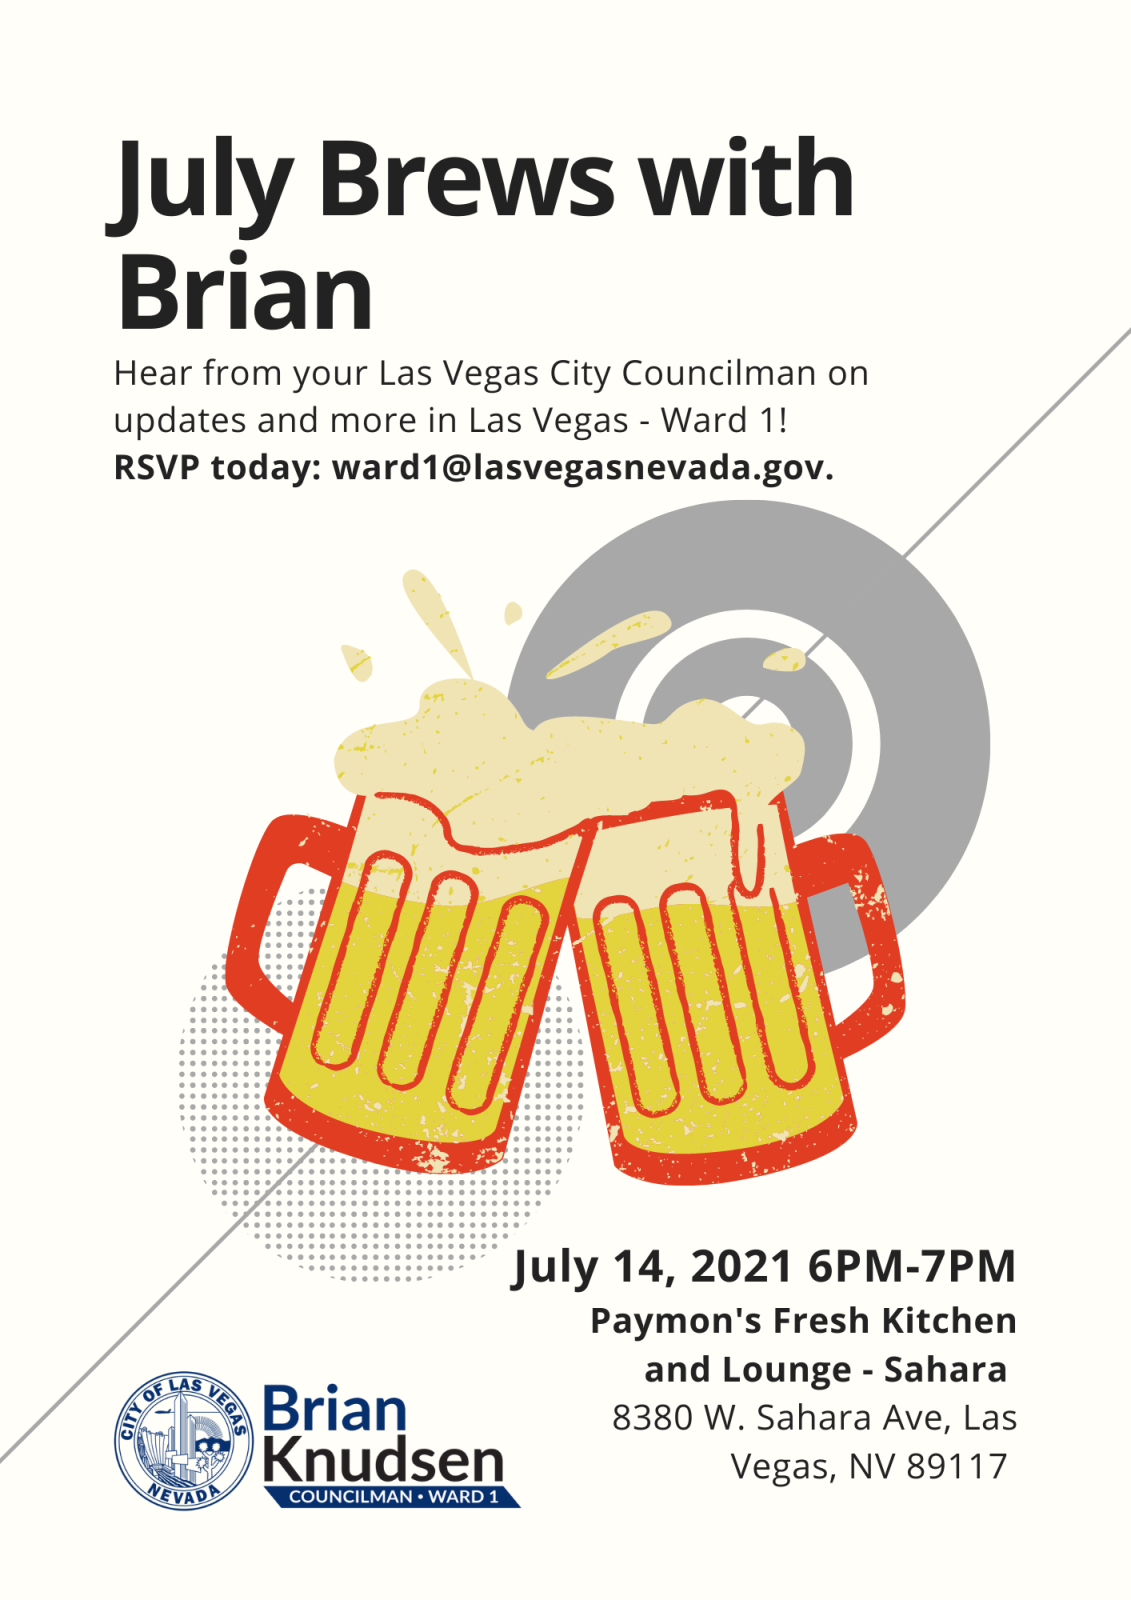 July Brews With Brian Event-7-14-21.png